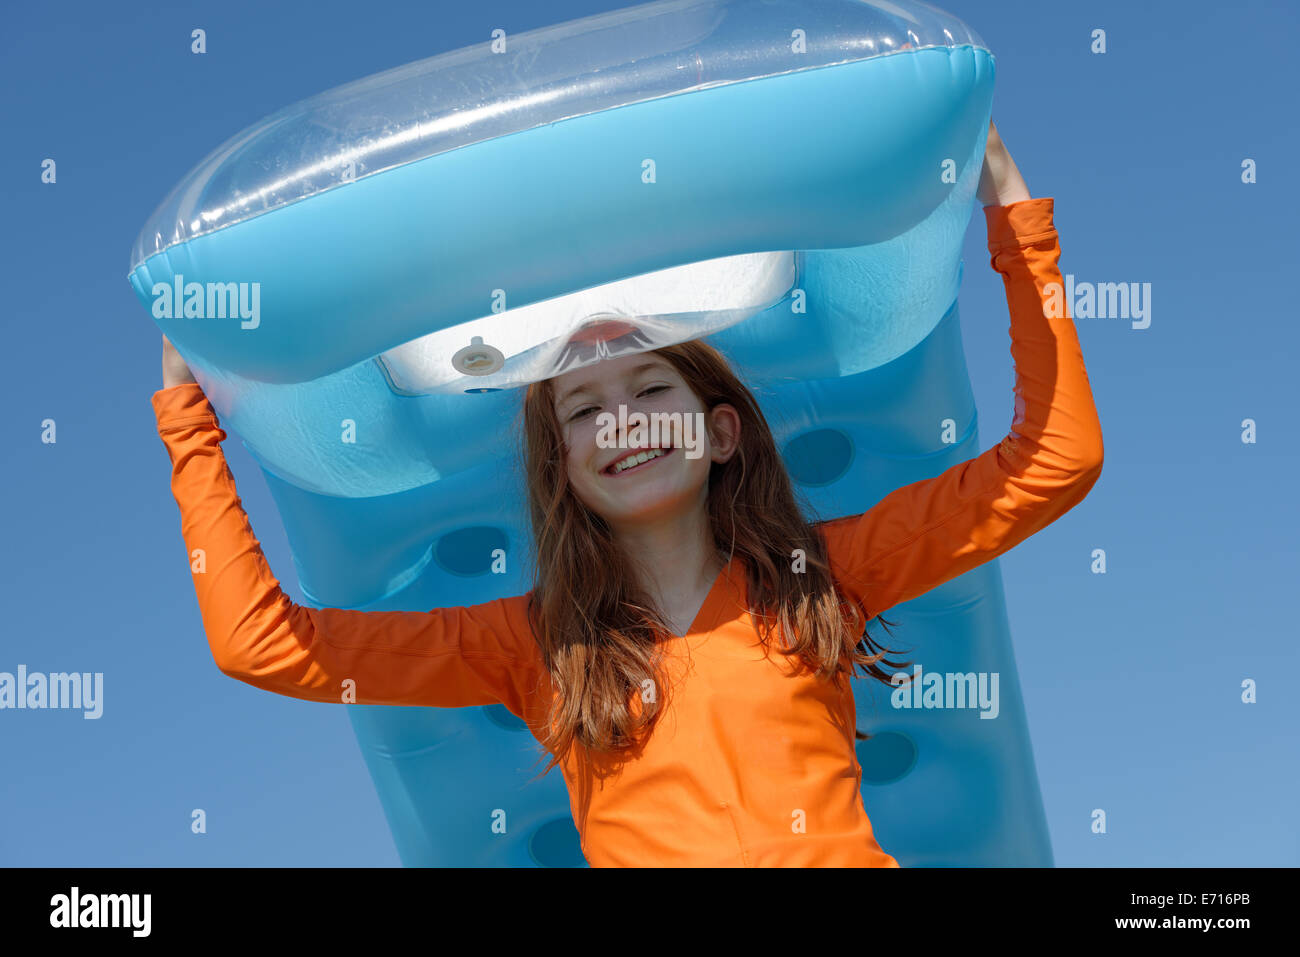 Portrait of smiling girl carrying air mattress on her head wearing sun protection longsleeve - Stock Image